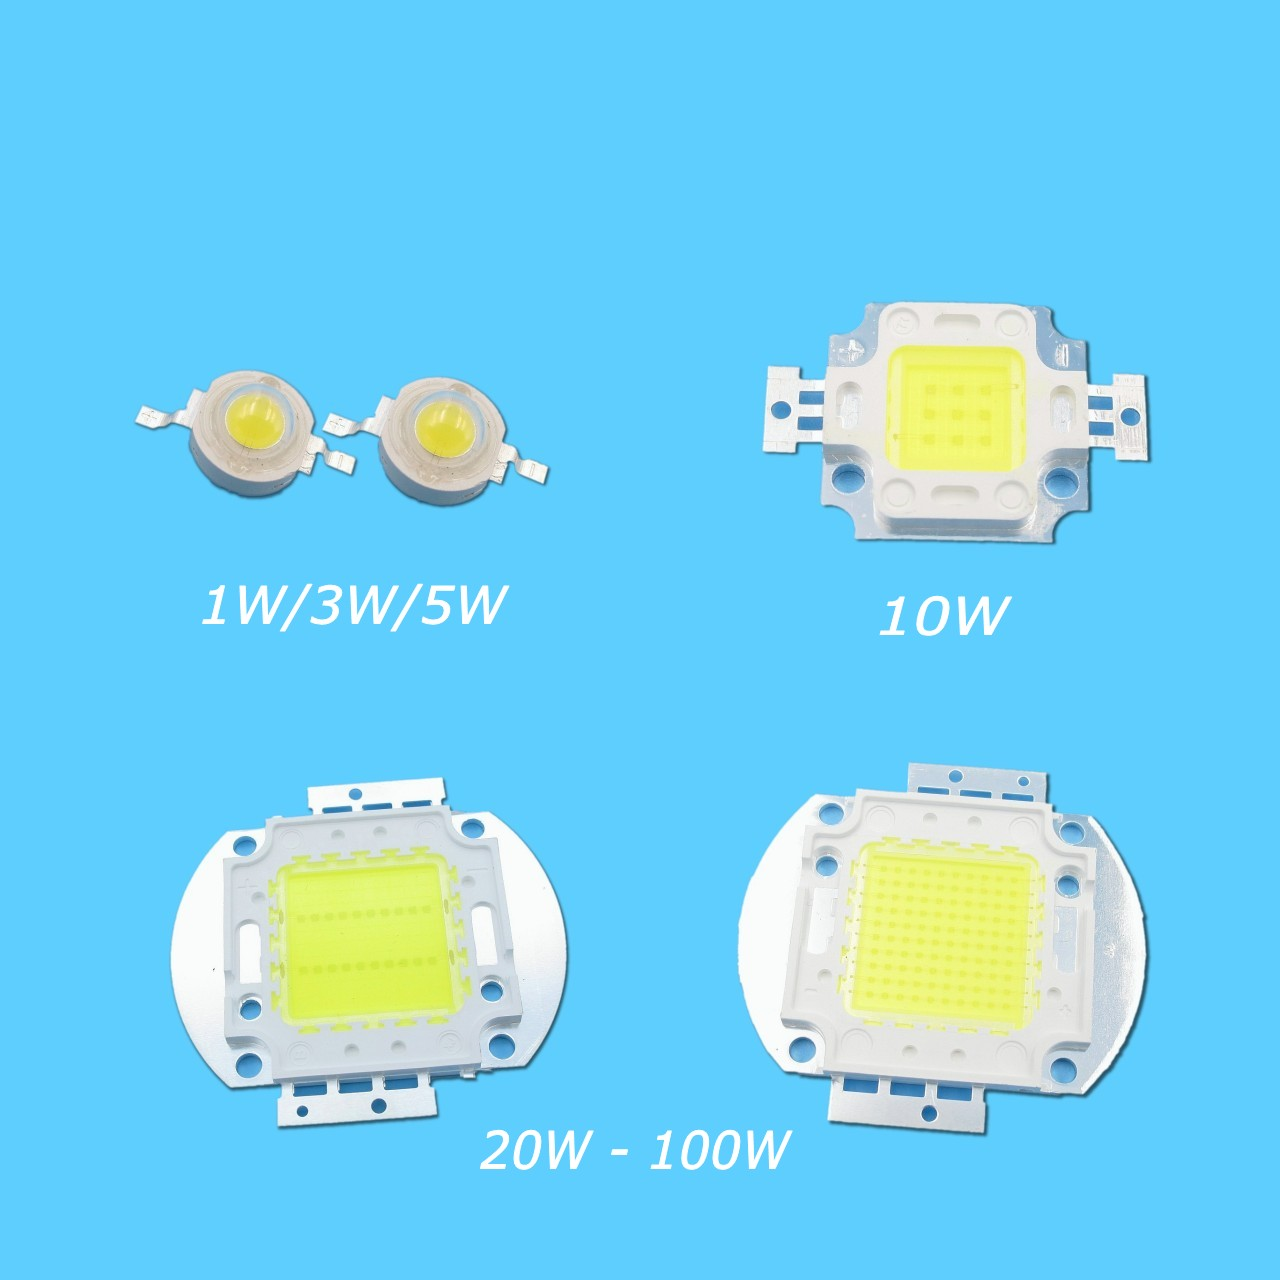 Jiaderui High Power <font><b>LED</b></font> Bulb Chip Cool White 1W 3W 5W 10W 20W 30W 50W 100W COB SMD Light Epistar 10000K 20000K <font><b>30000K</b></font> image